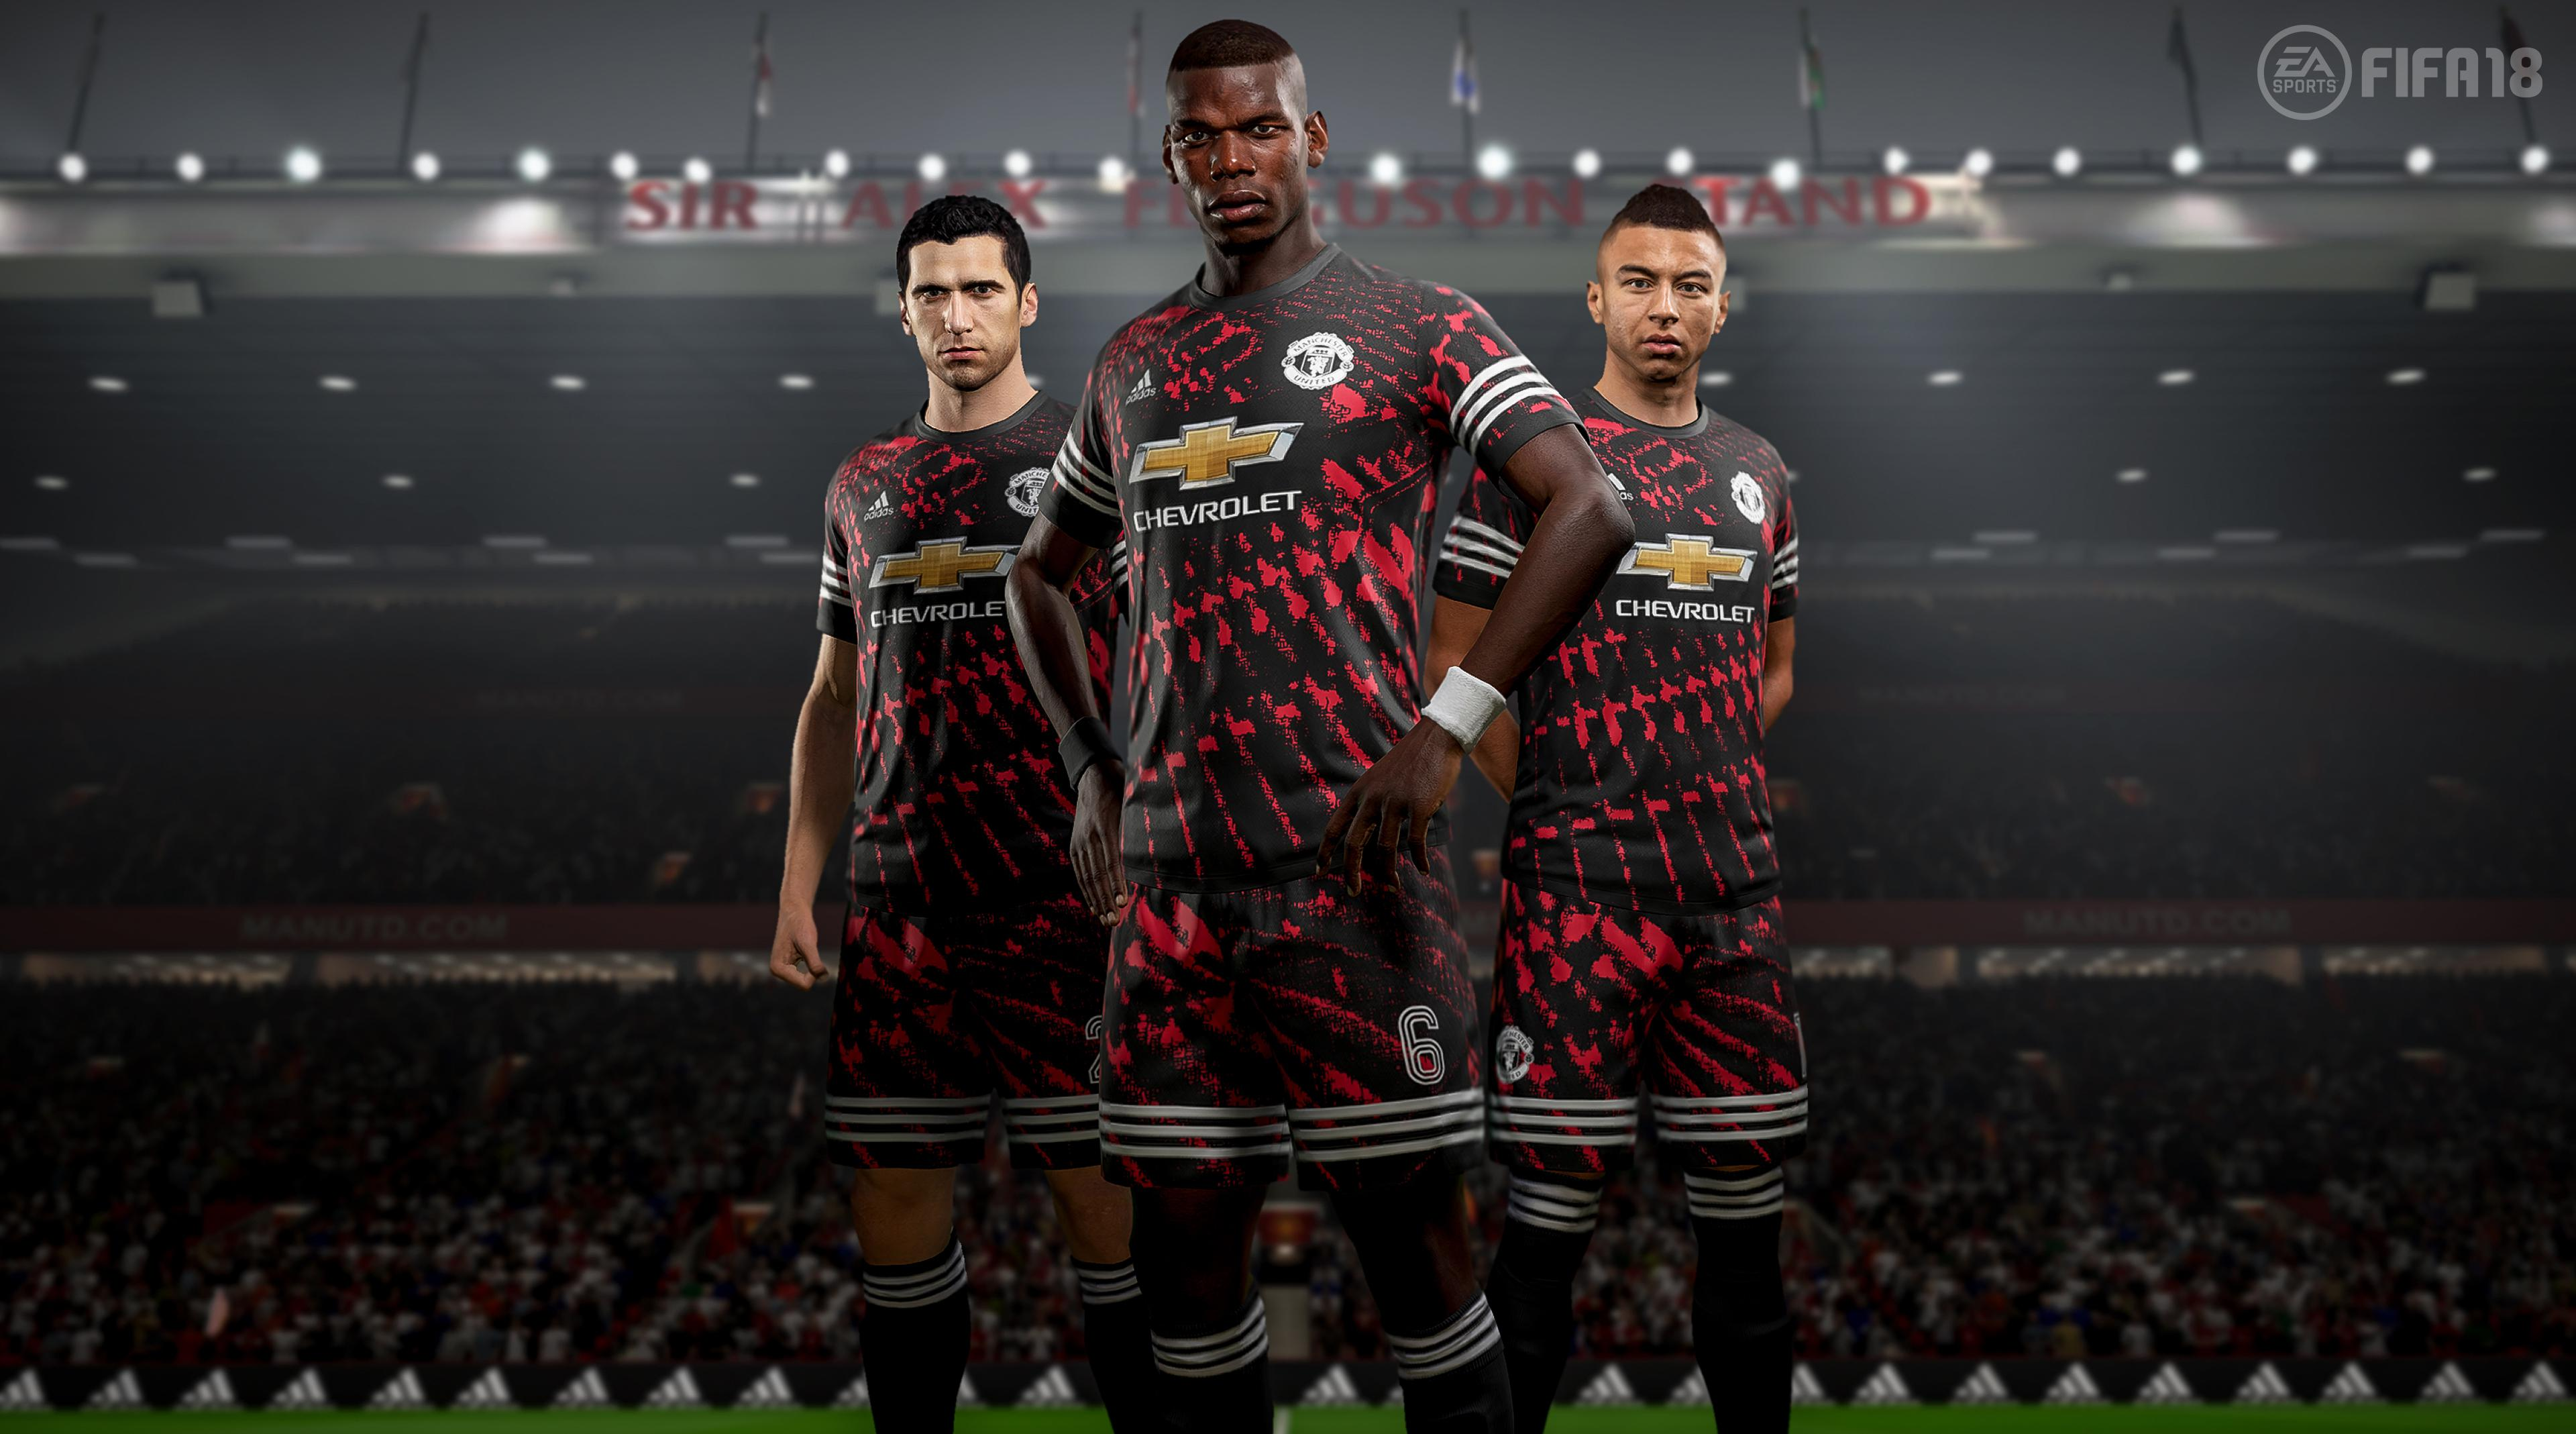 Manchester United players model the new kit in the game – although we'll never see it in real life